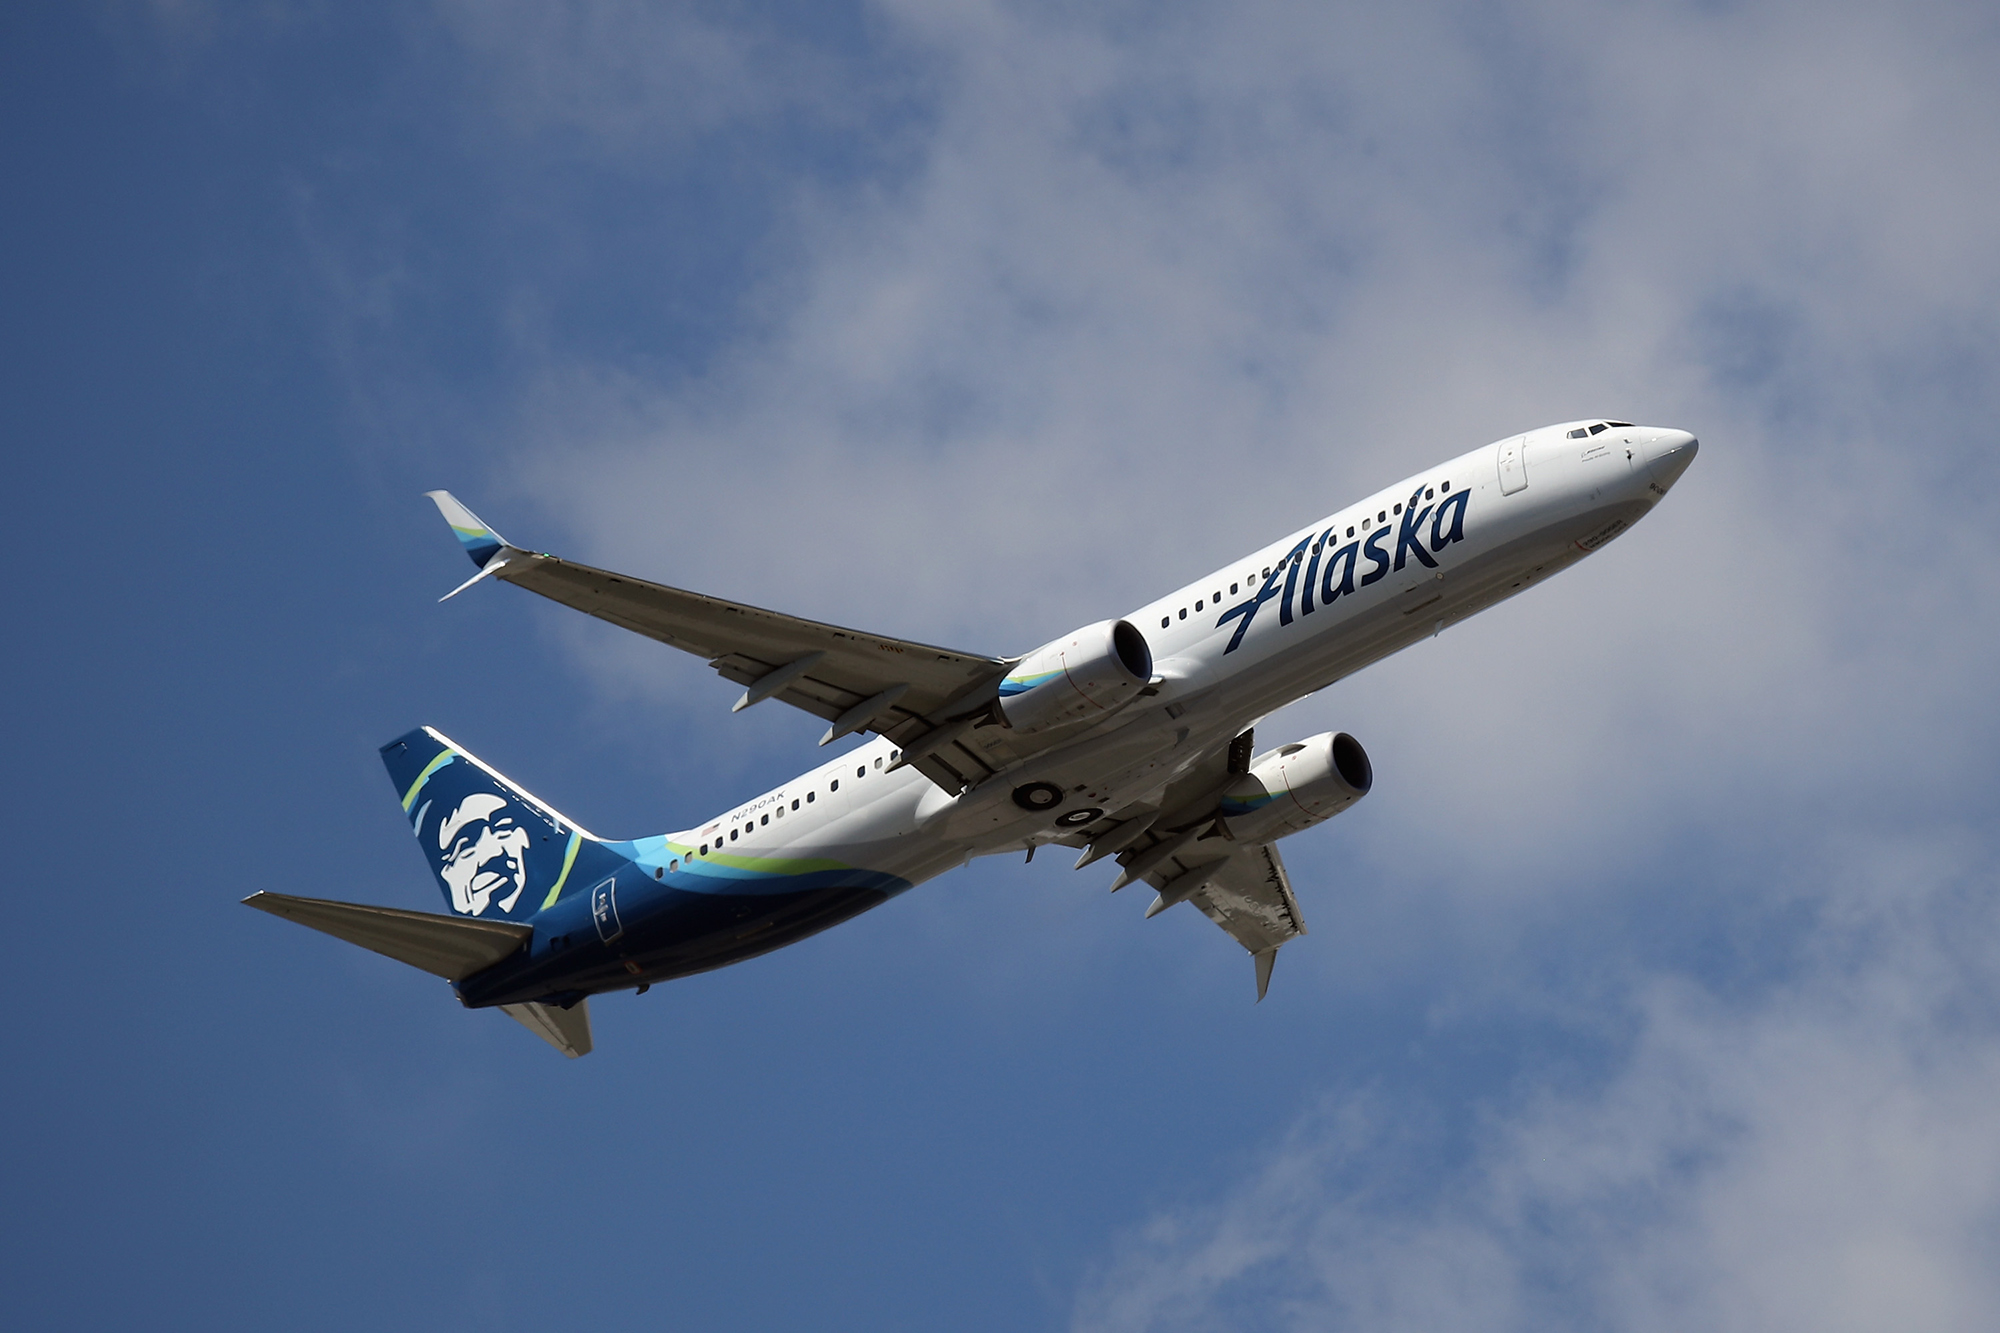 Alaska Airlines bans at least 14 people after 'rowdy' behavior on flight leaving DC